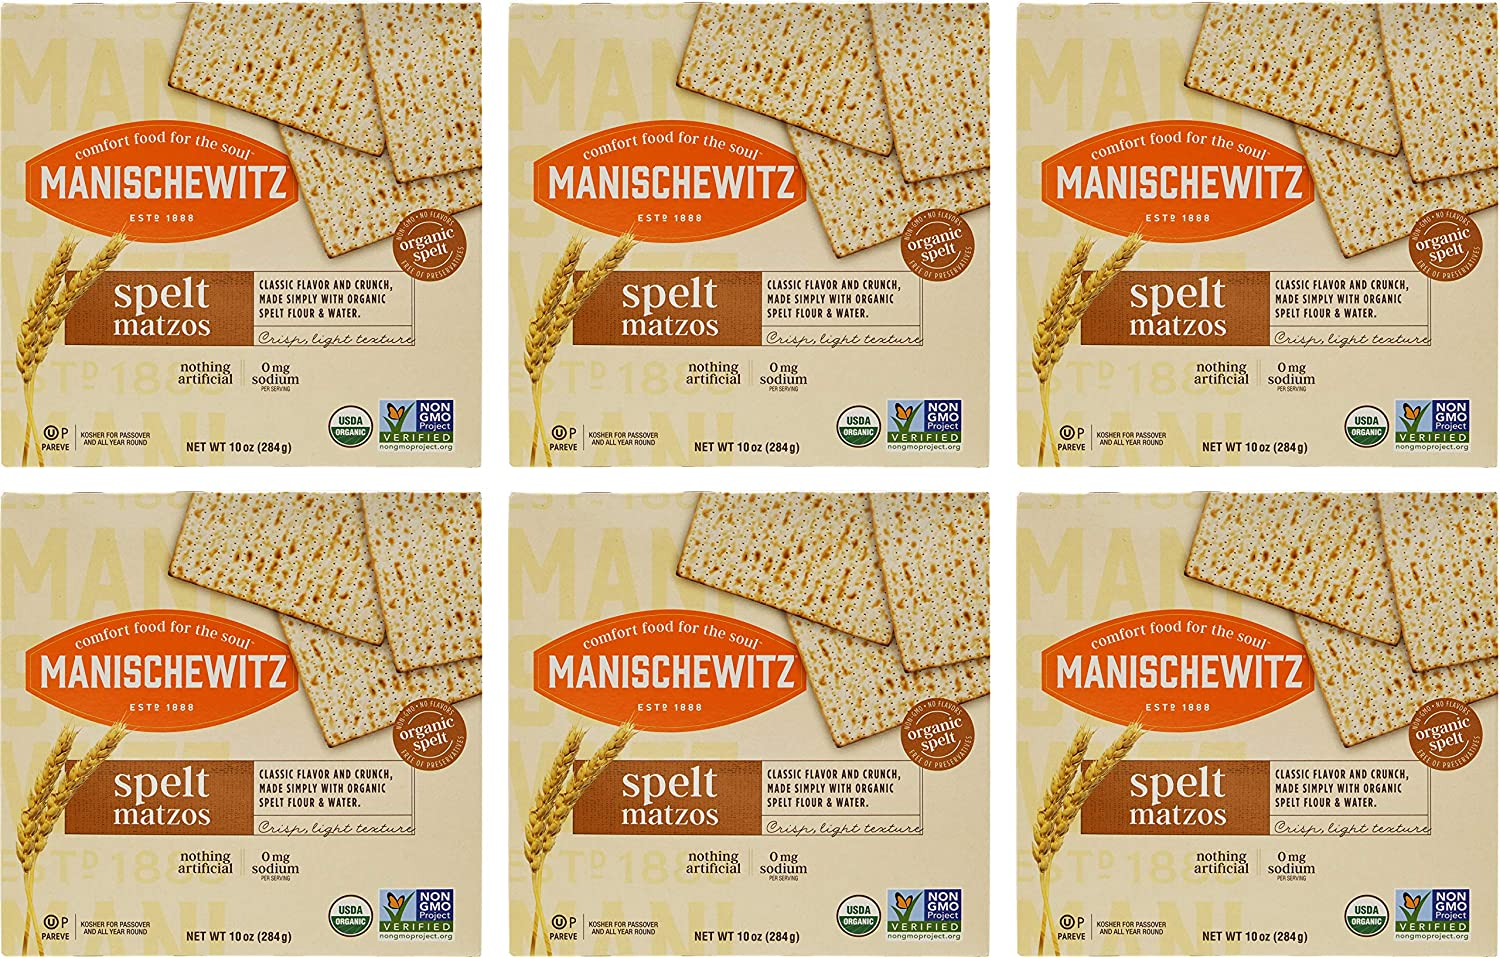 Tampa Mall Manischewitz Organic Spelt Matzo Crackers KFP 6. Oz. Of Selling and selling 10 Pack